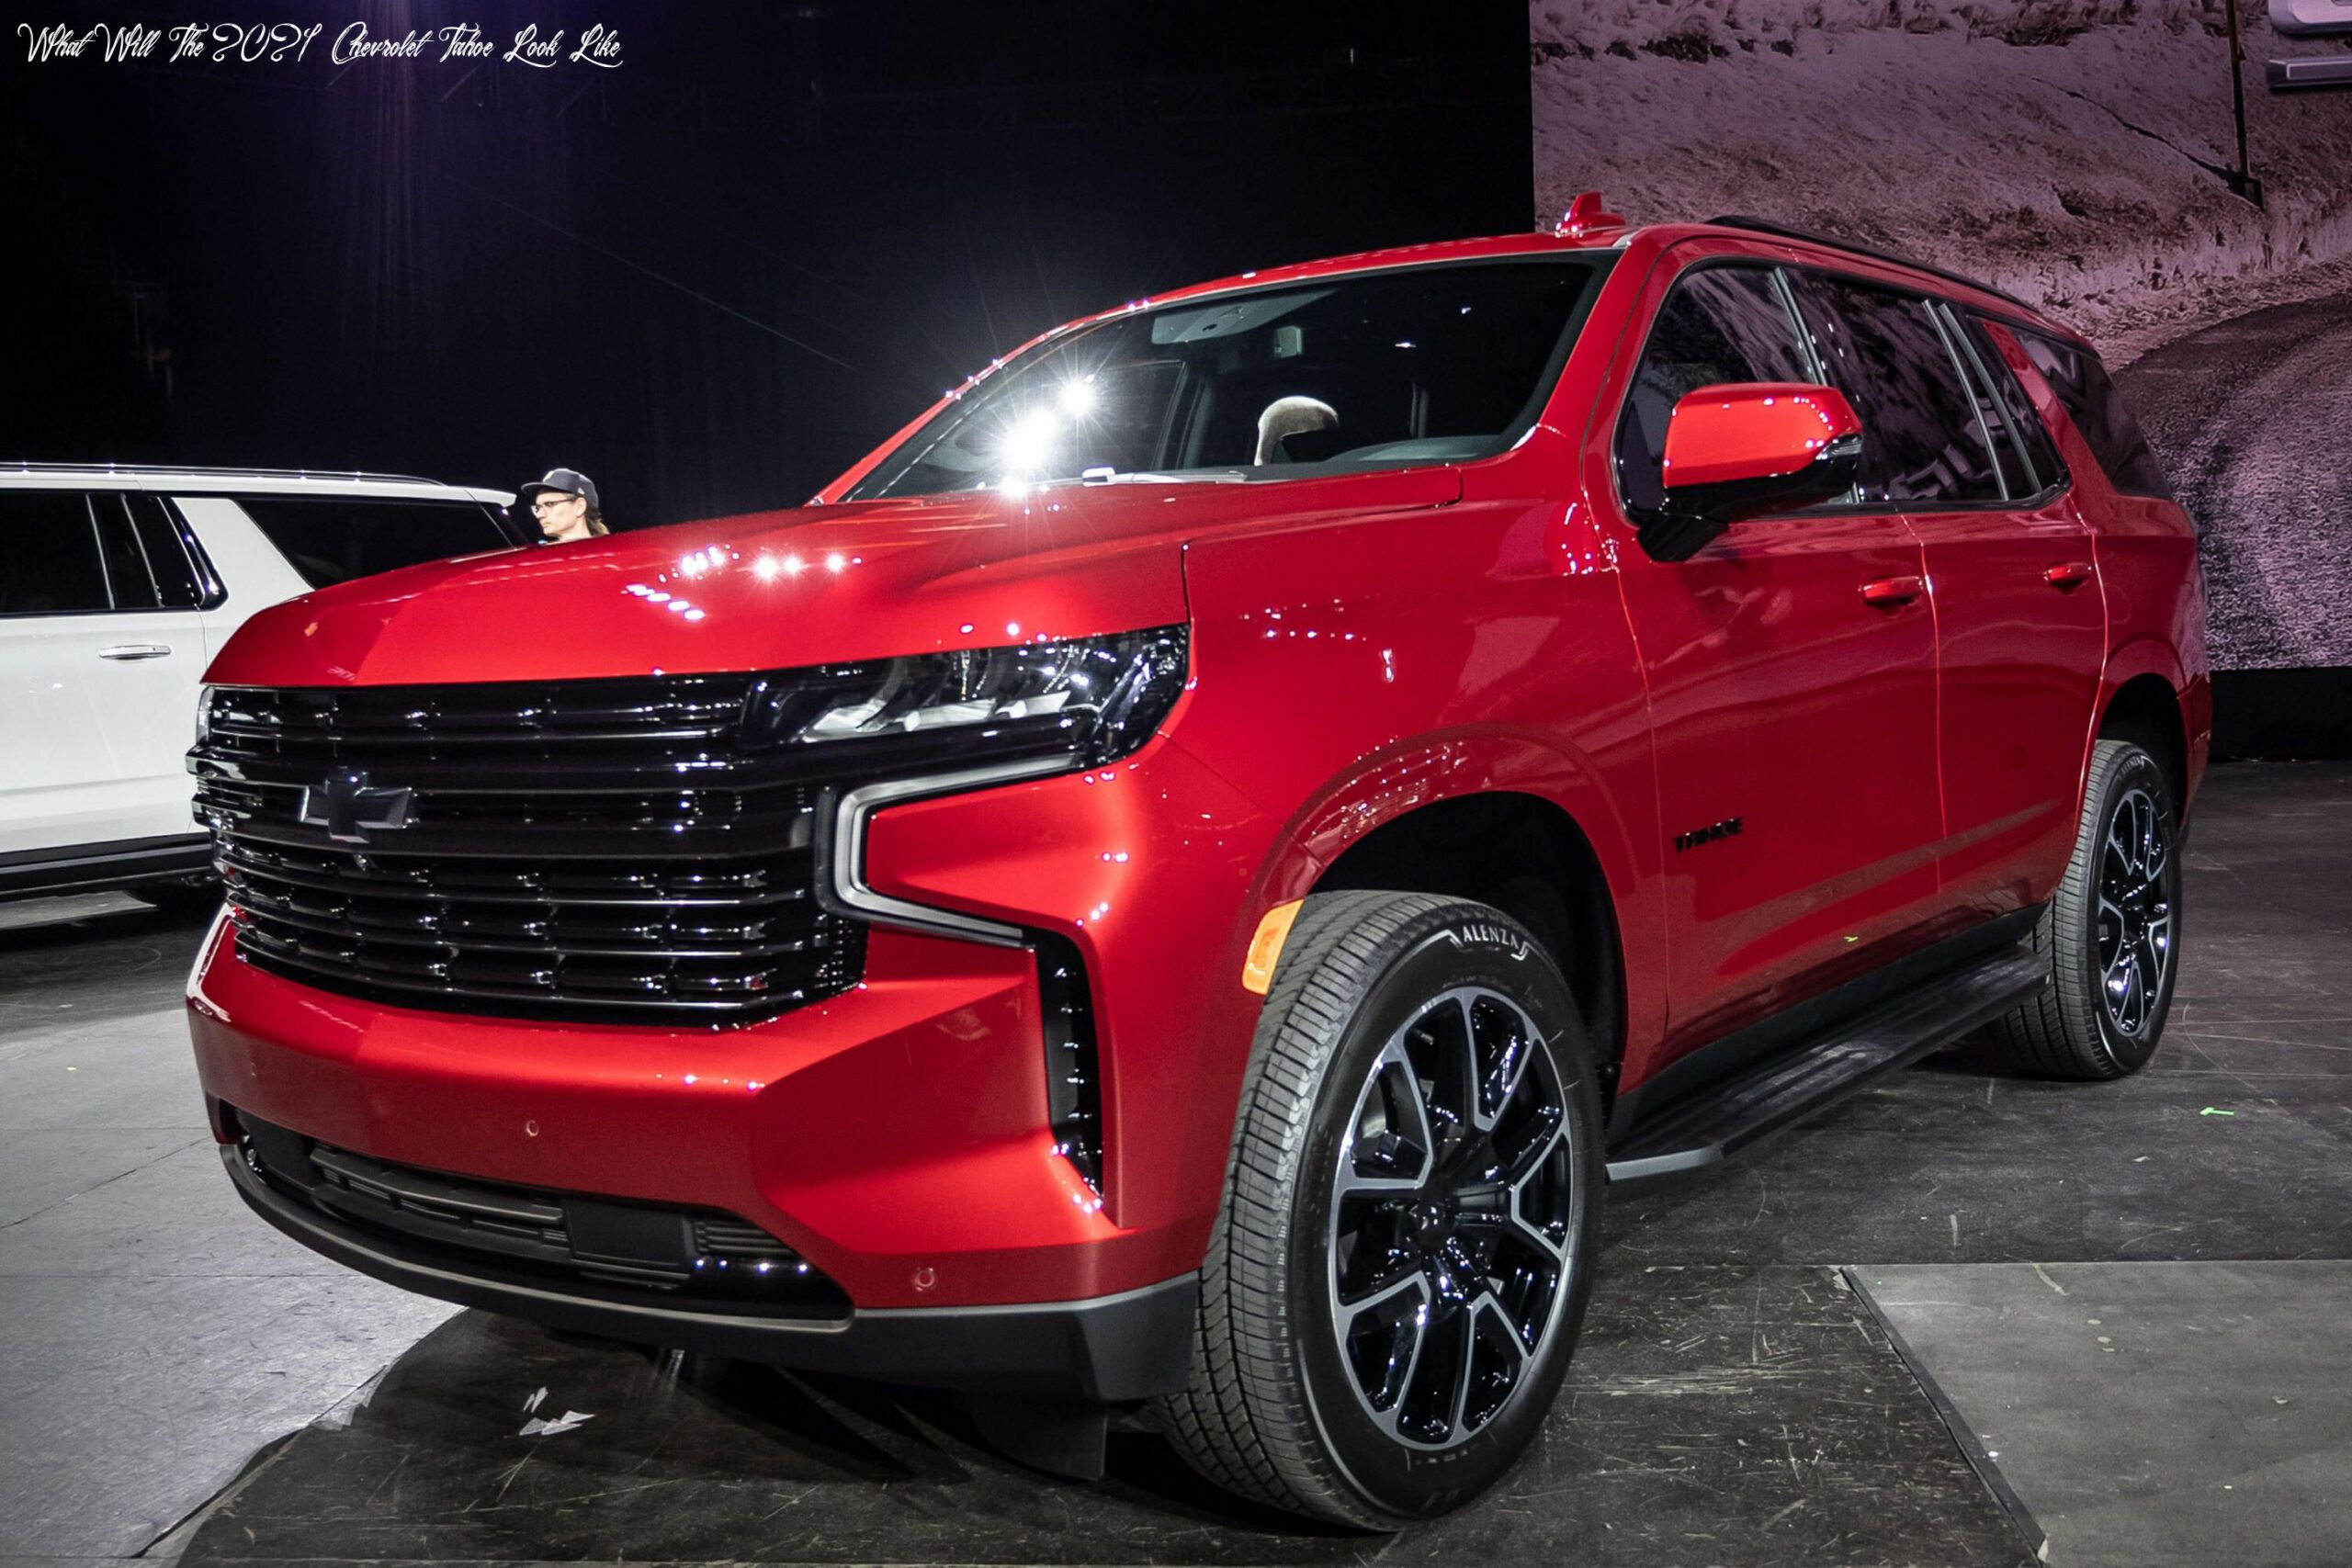 What Will The 2021 Chevrolet Tahoe Look Like Price And Release Date Camiones Chevy Camionetas Clasicas Chevrolet Chevrolet Camioneta